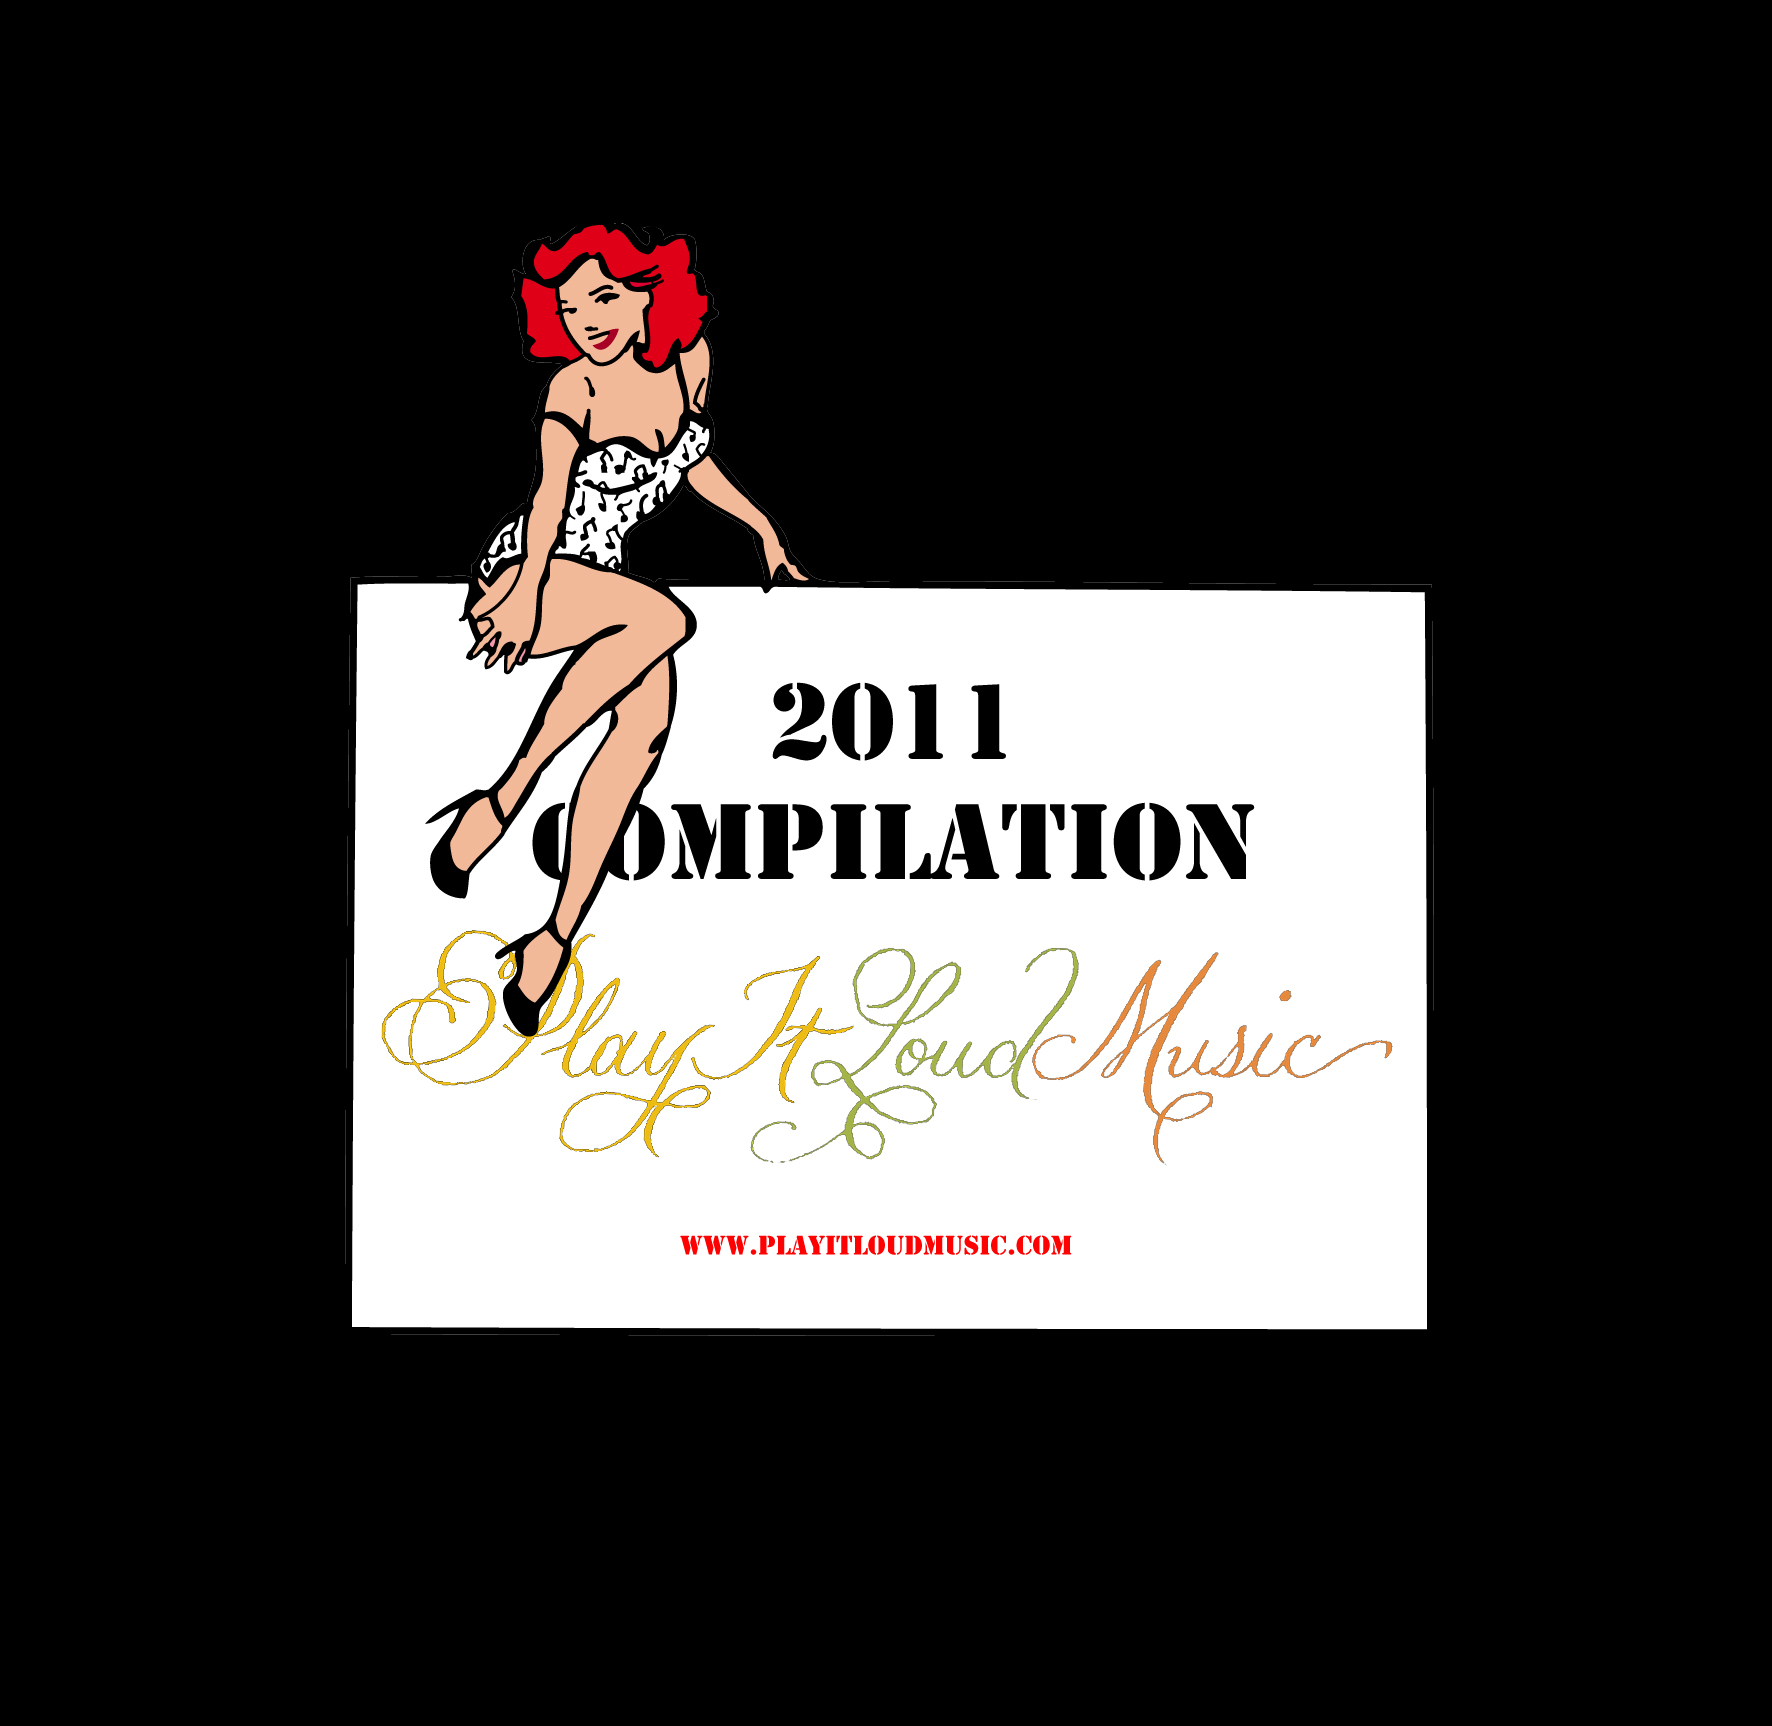 Album Cover for the 2011 PlayItLoudMusic compilation CD